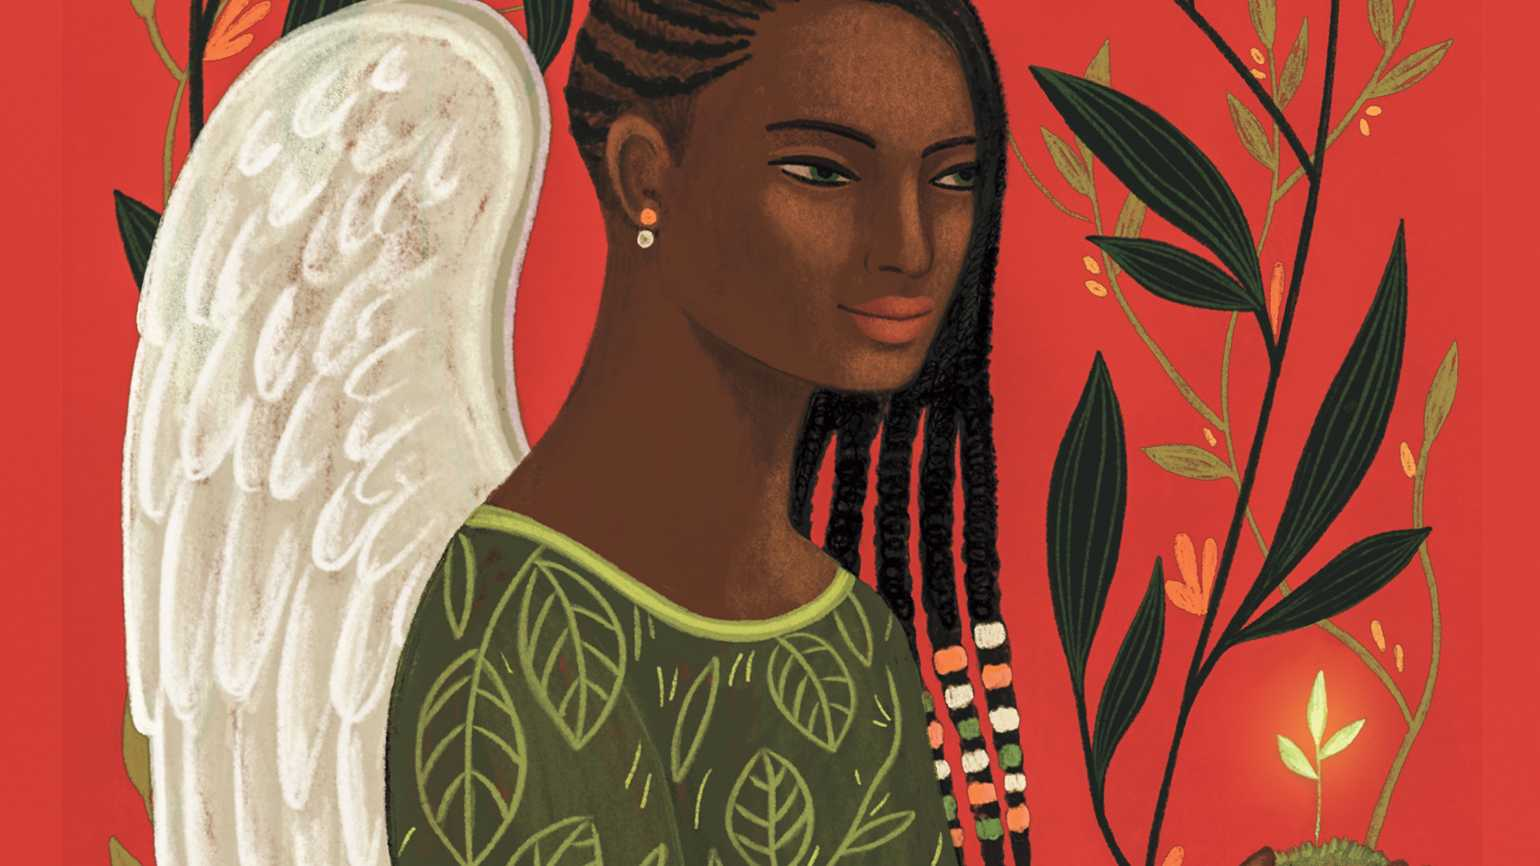 An angel holding a small sprout; Illustration by Carmen Garcia